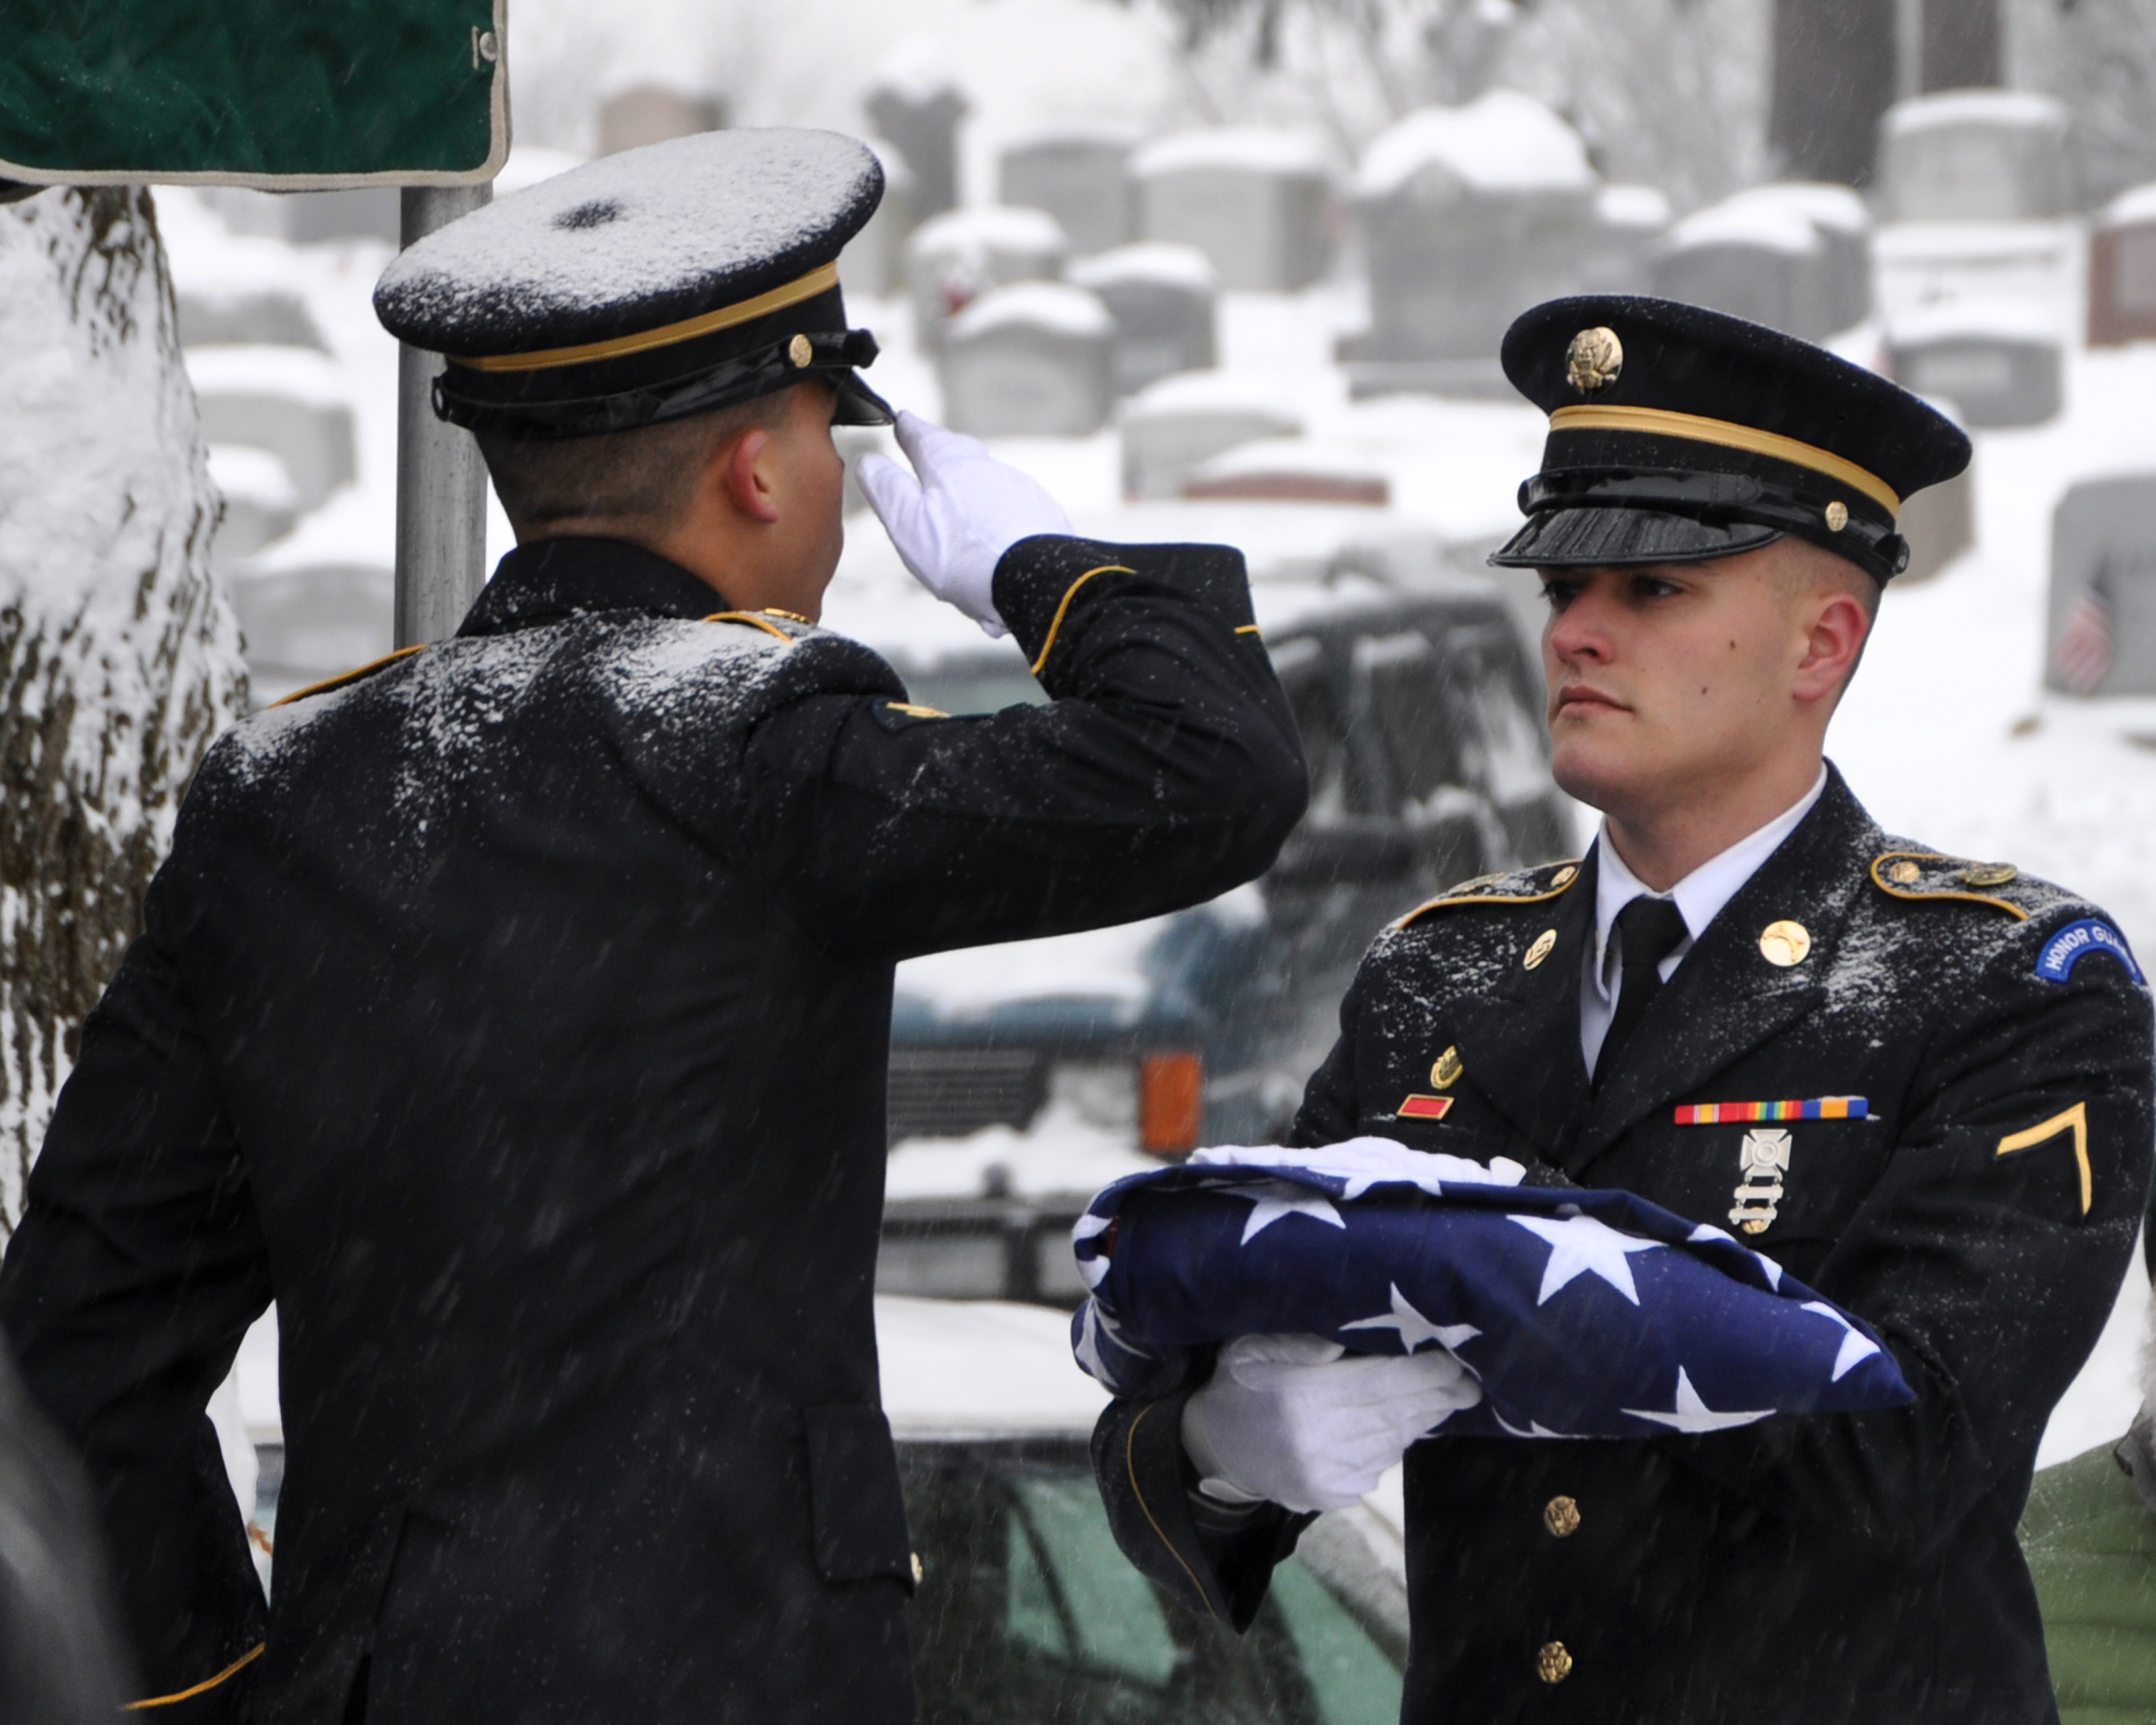 Son of pearl harbor veteran finds that military funeral honors.